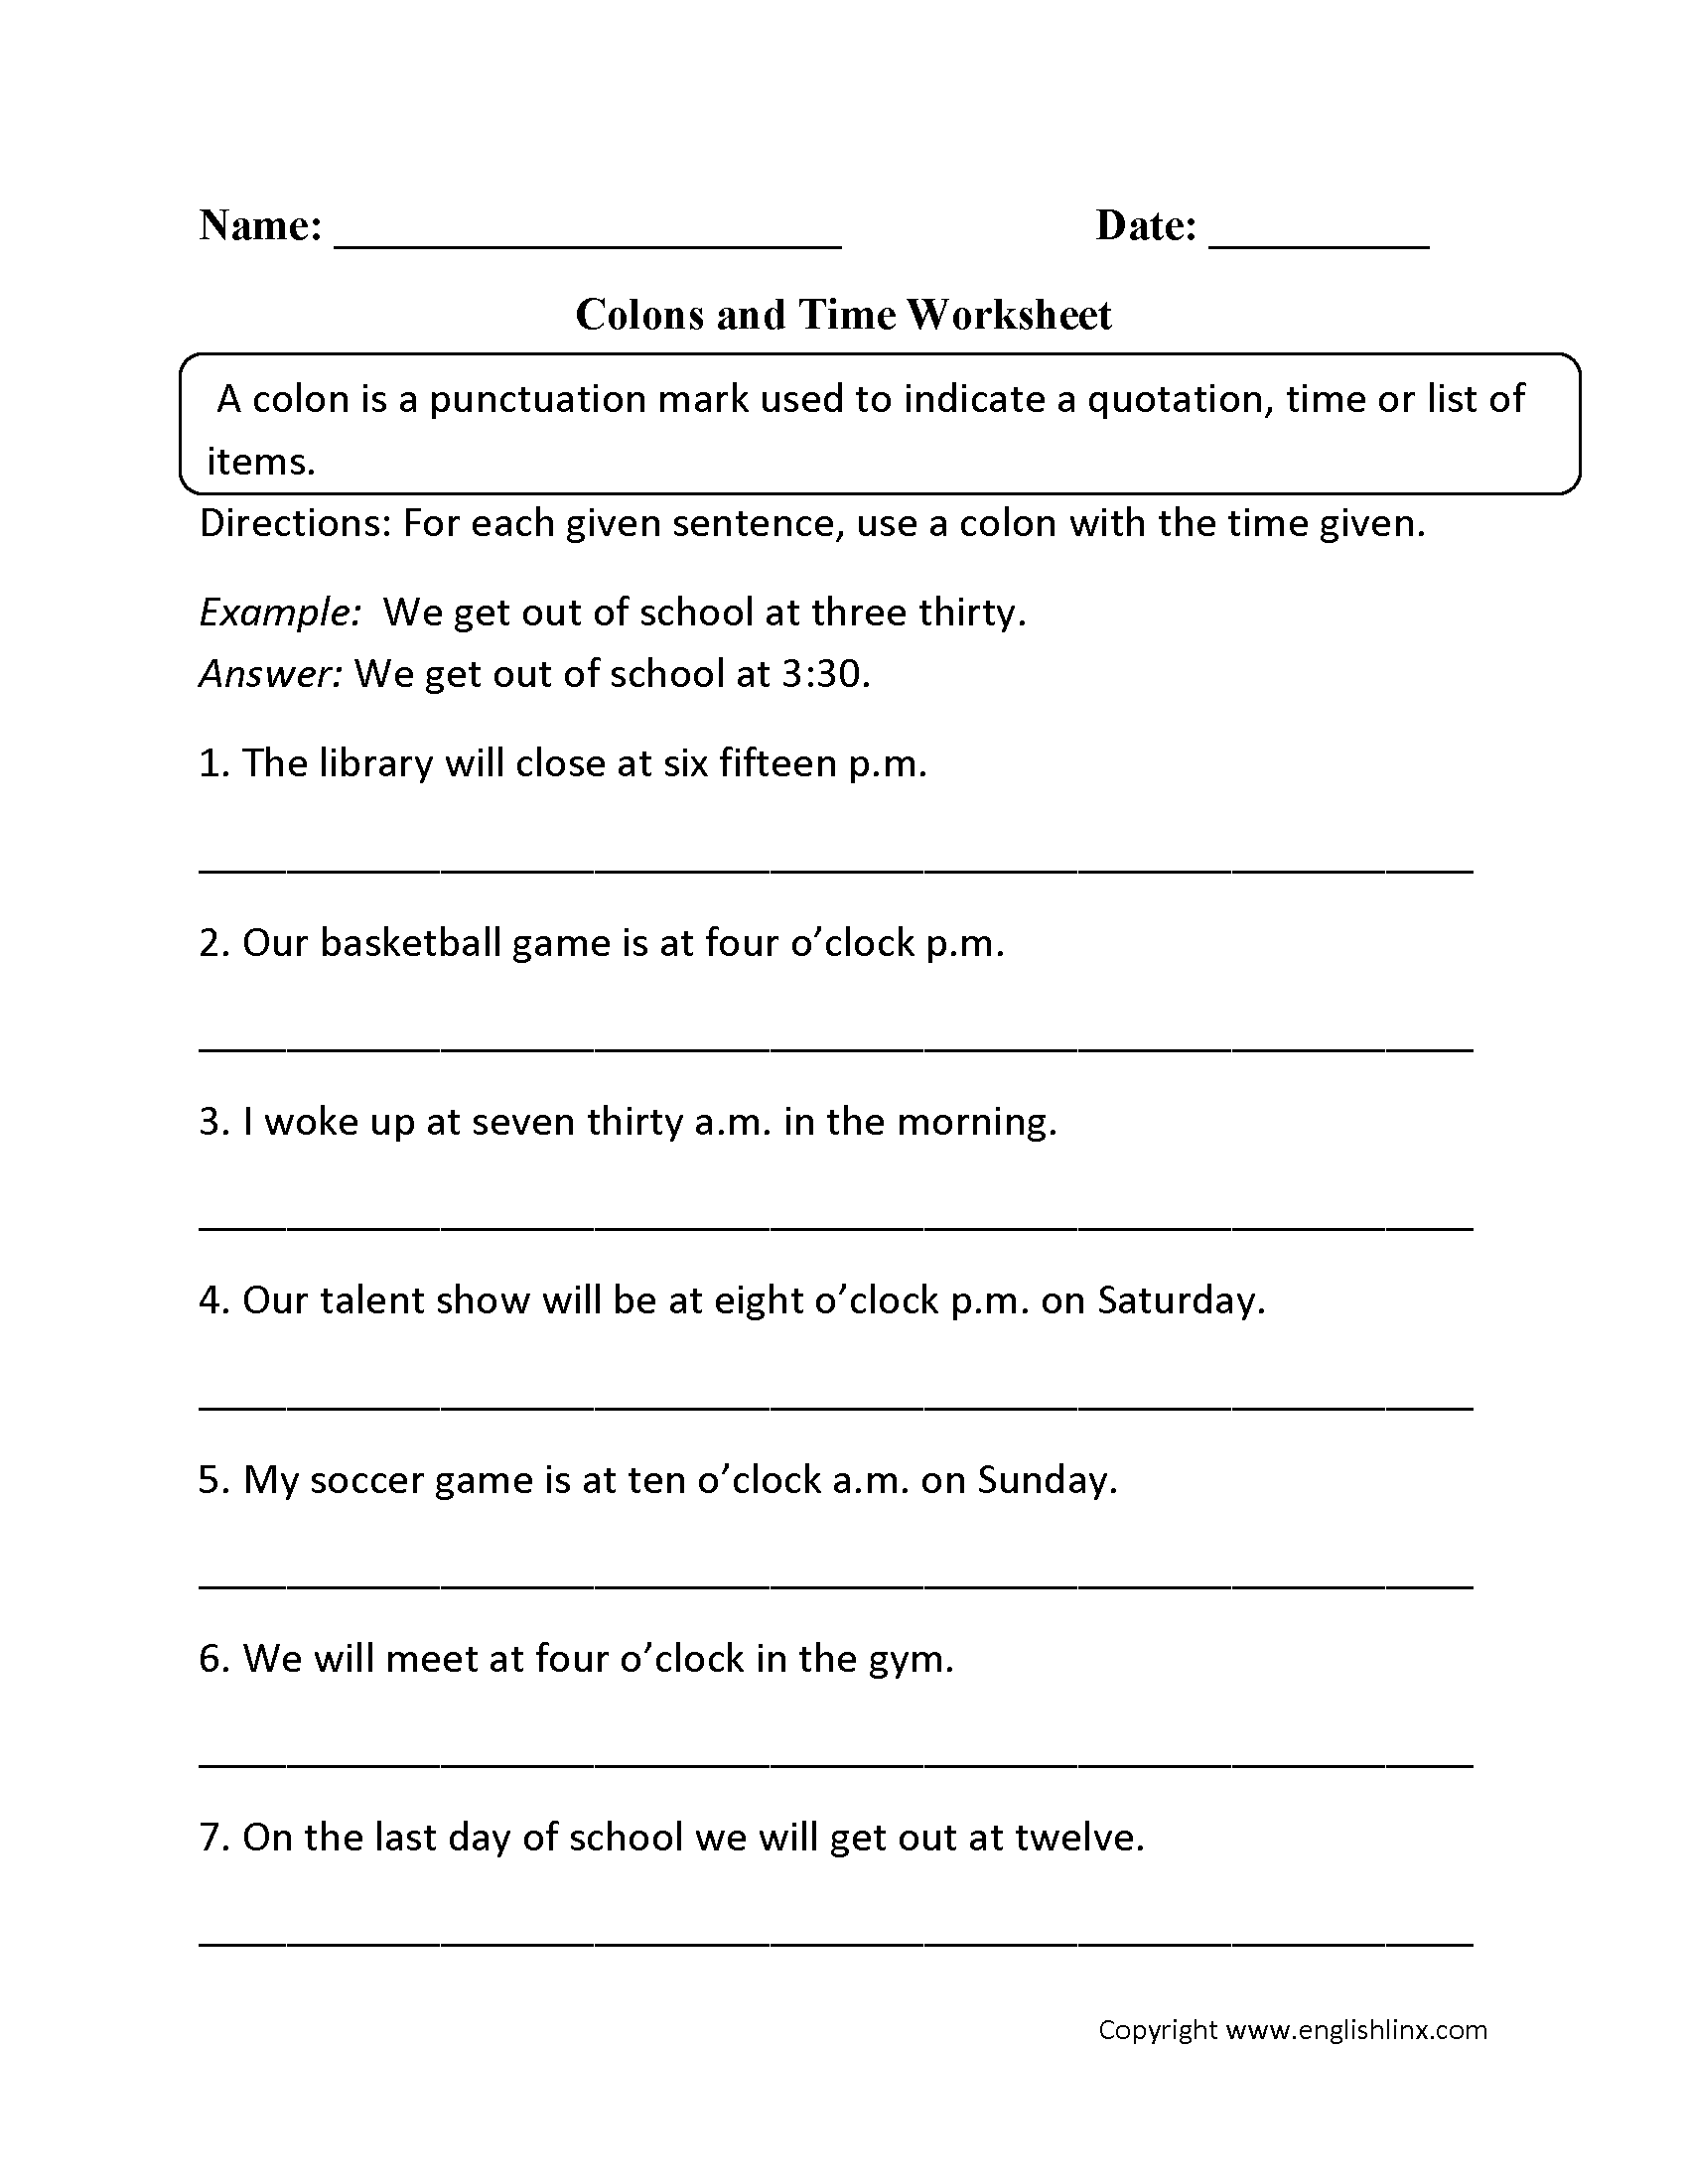 Punctuation Worksheet For Adults